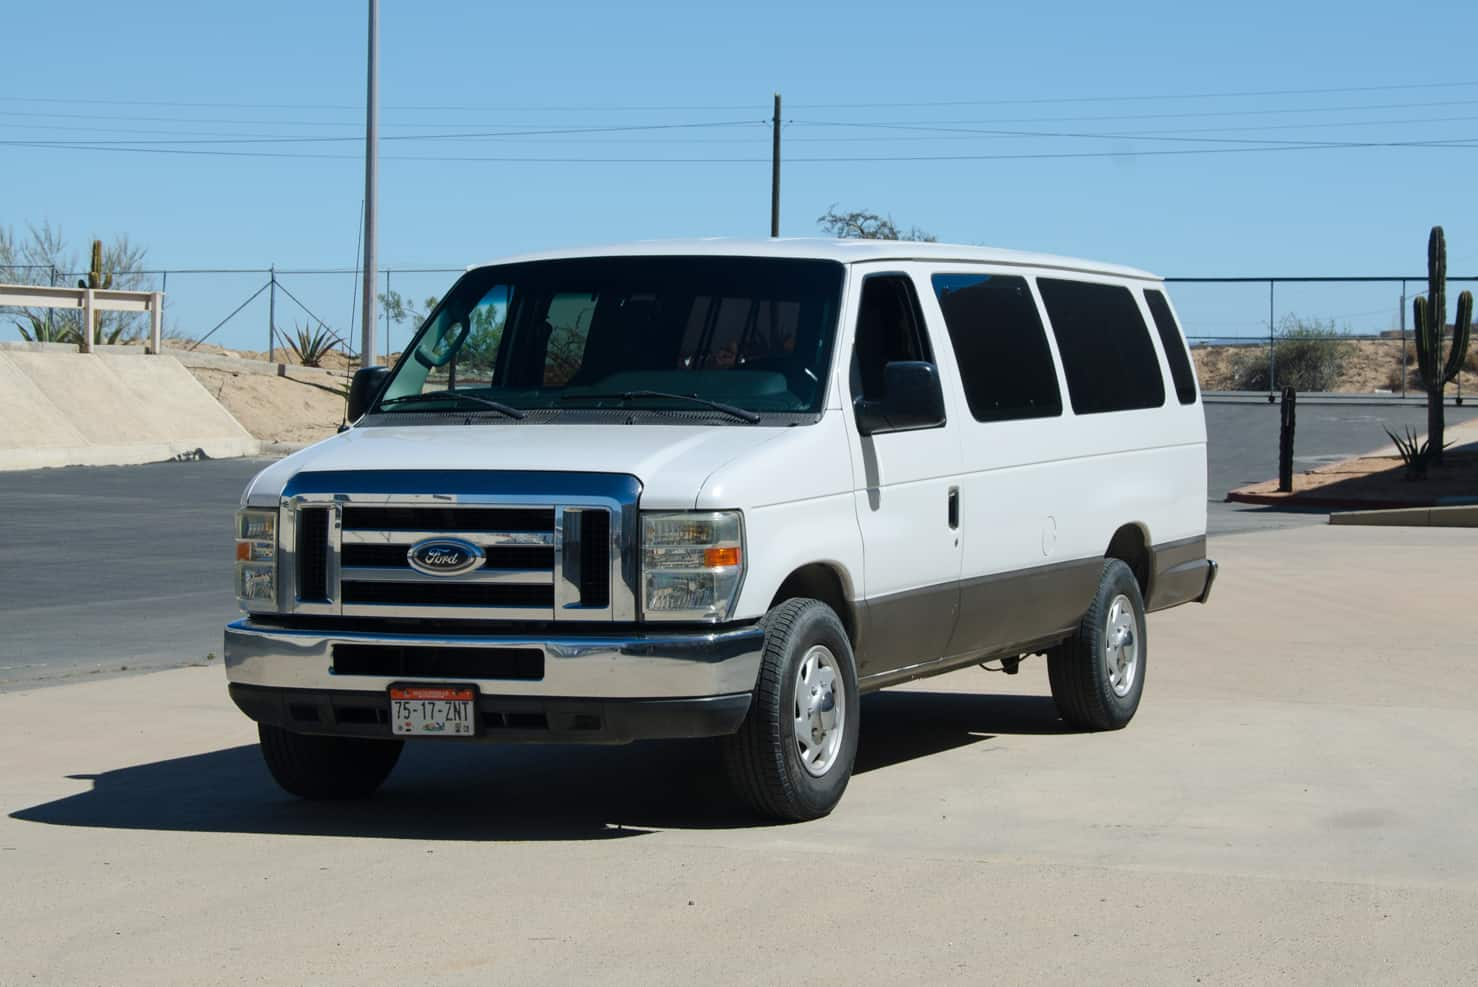 Ford Super Duty Vans 12 to 15 Passengers